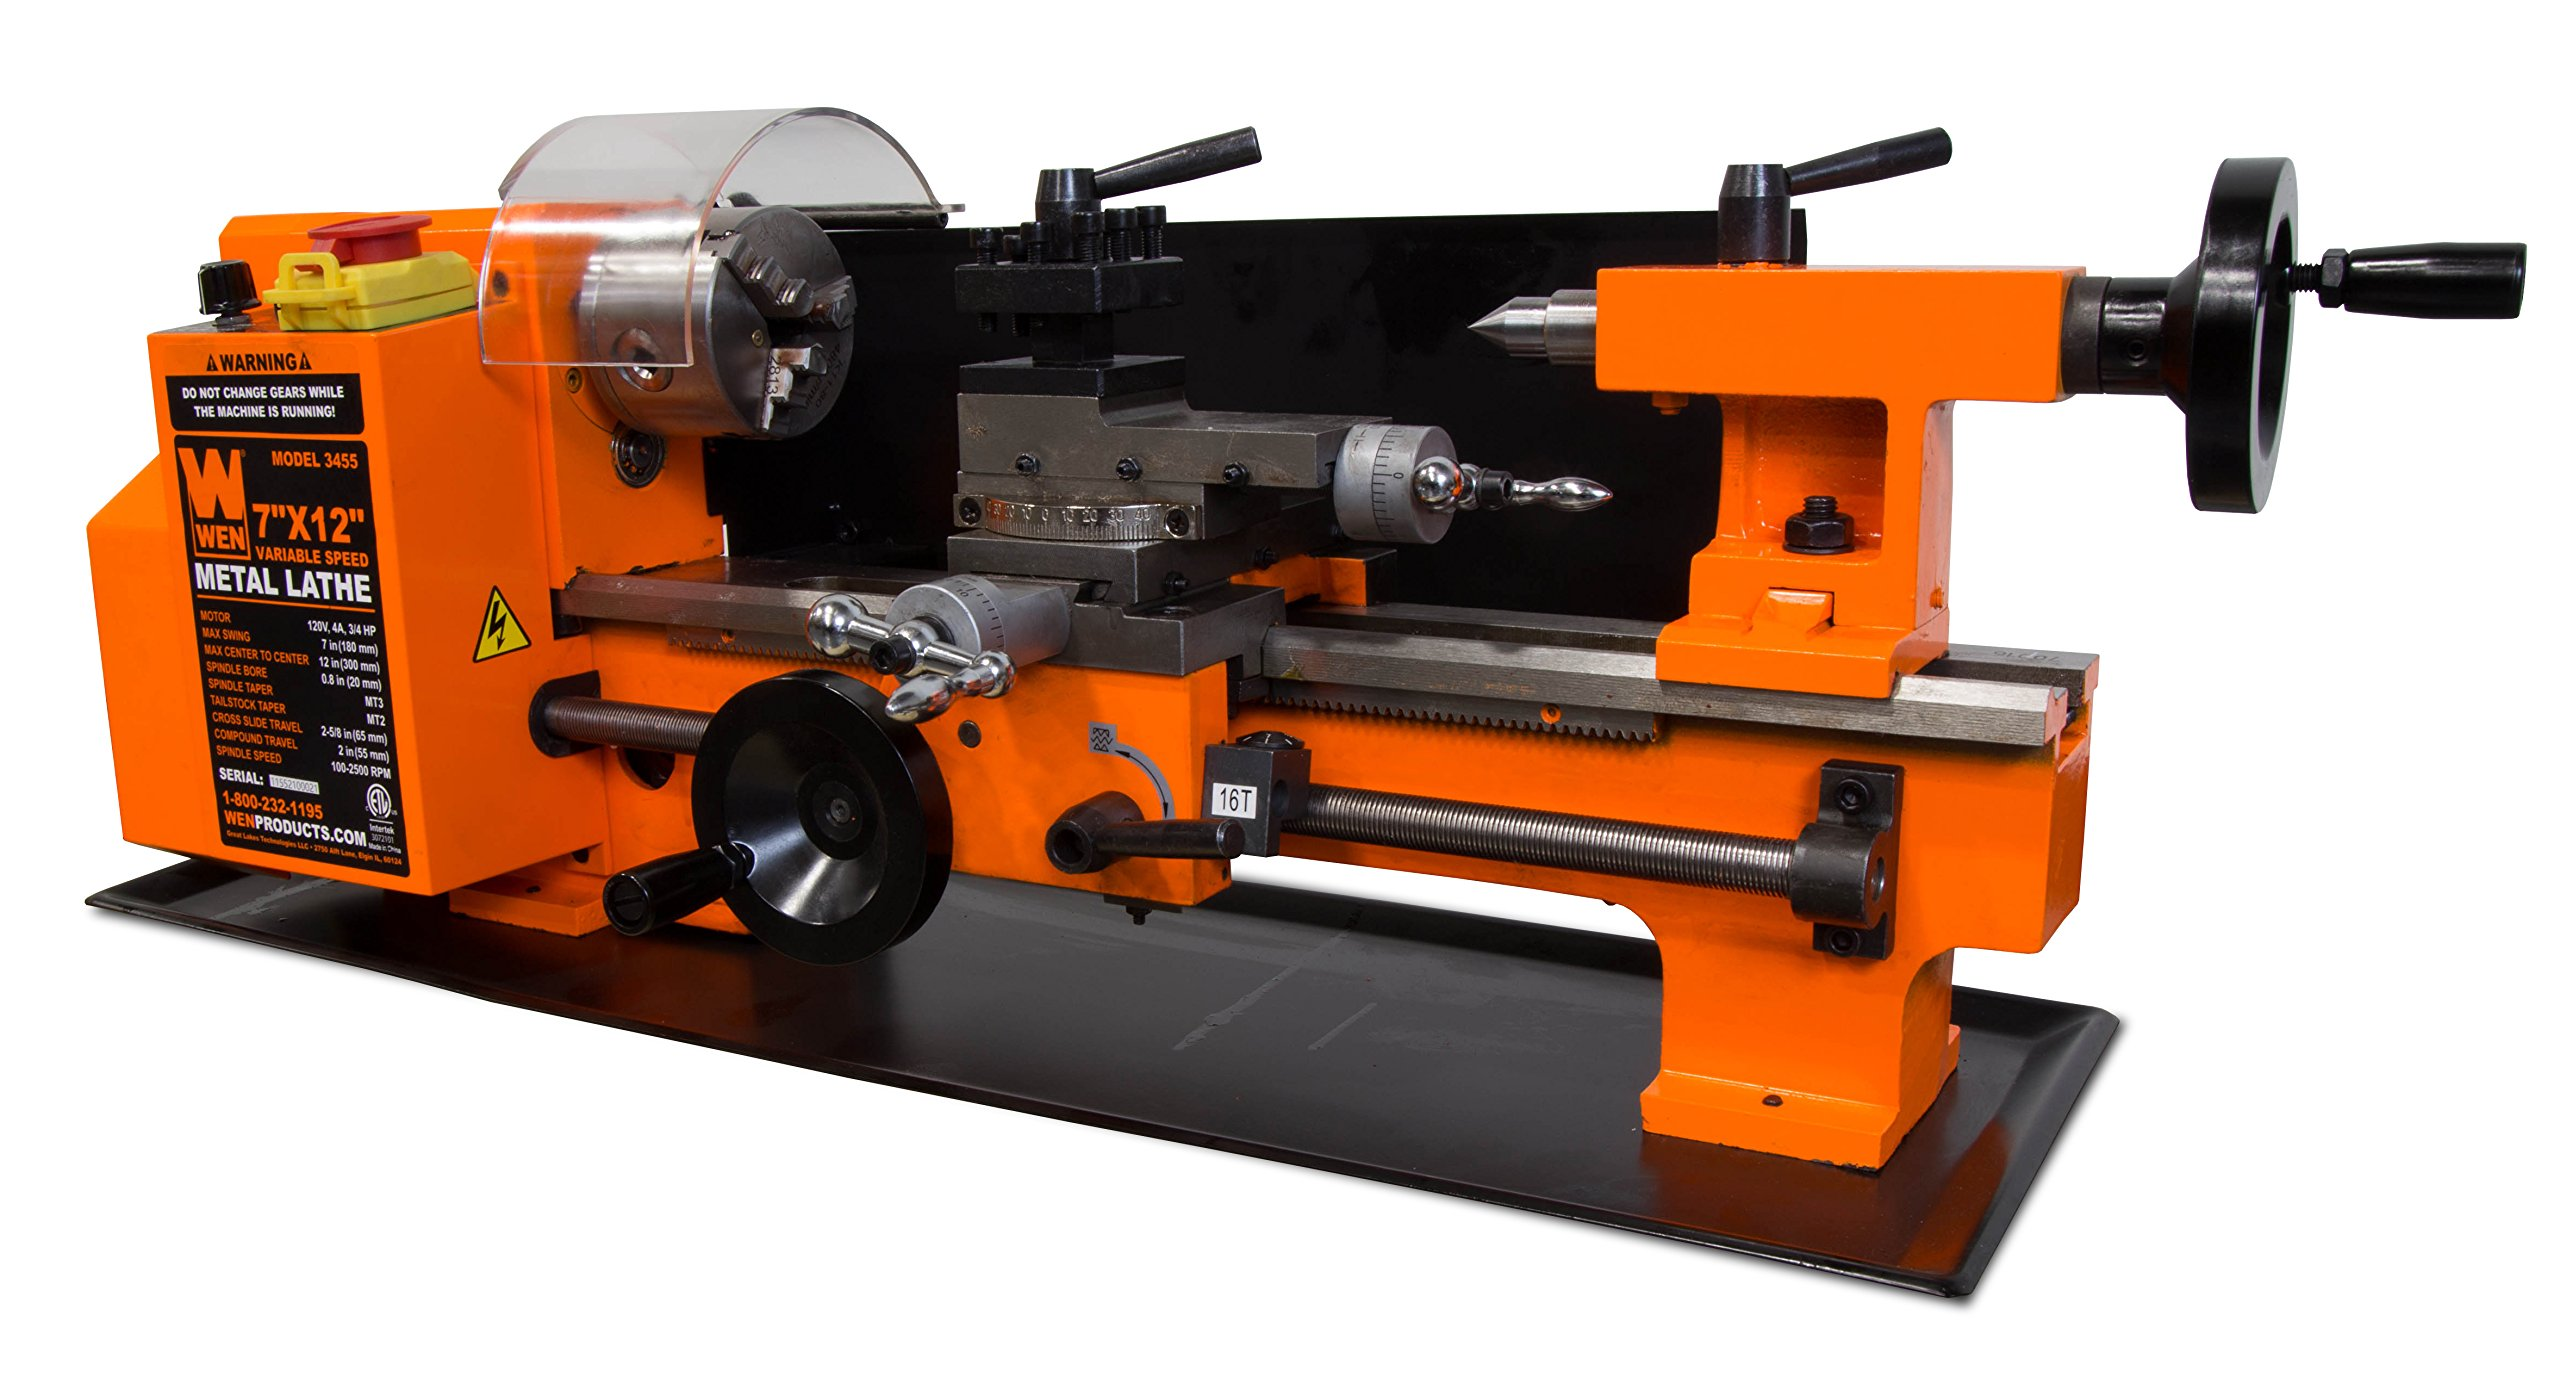 Details about WEN 3455 Variable Speed 7 by 12'' Two-Direction Benchtop  Metal Lathe